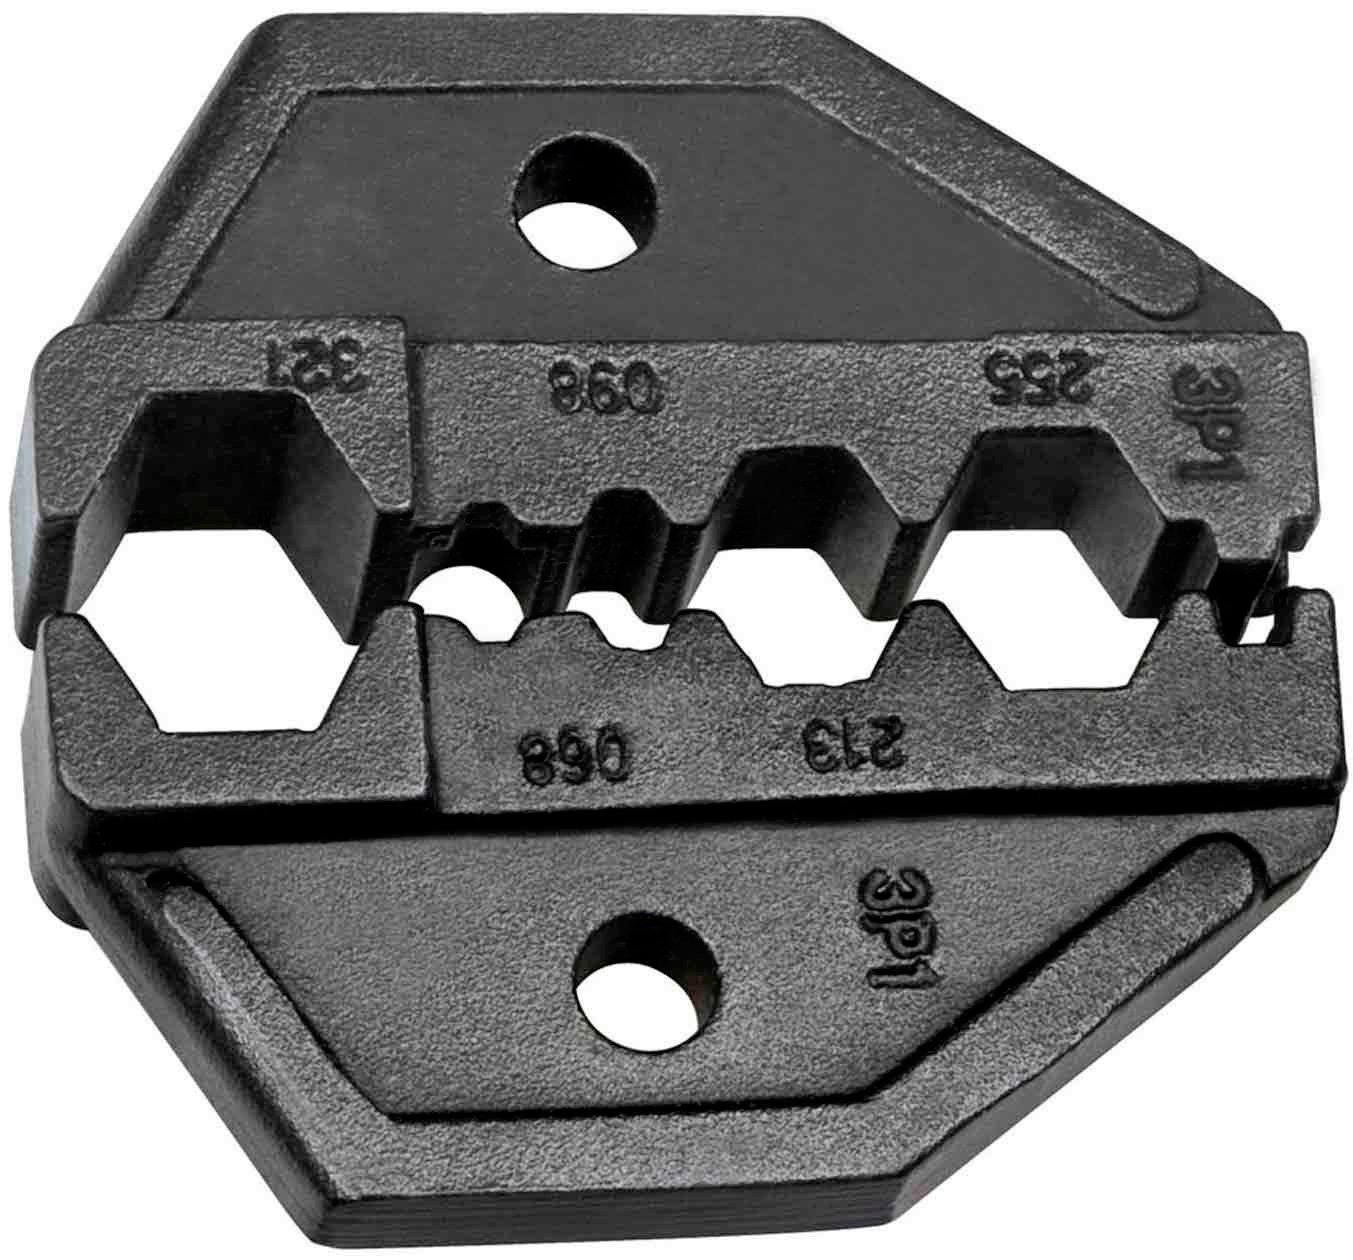 Klein Tools VDV211-041 Die Set for VDV200-010 VDV211-041